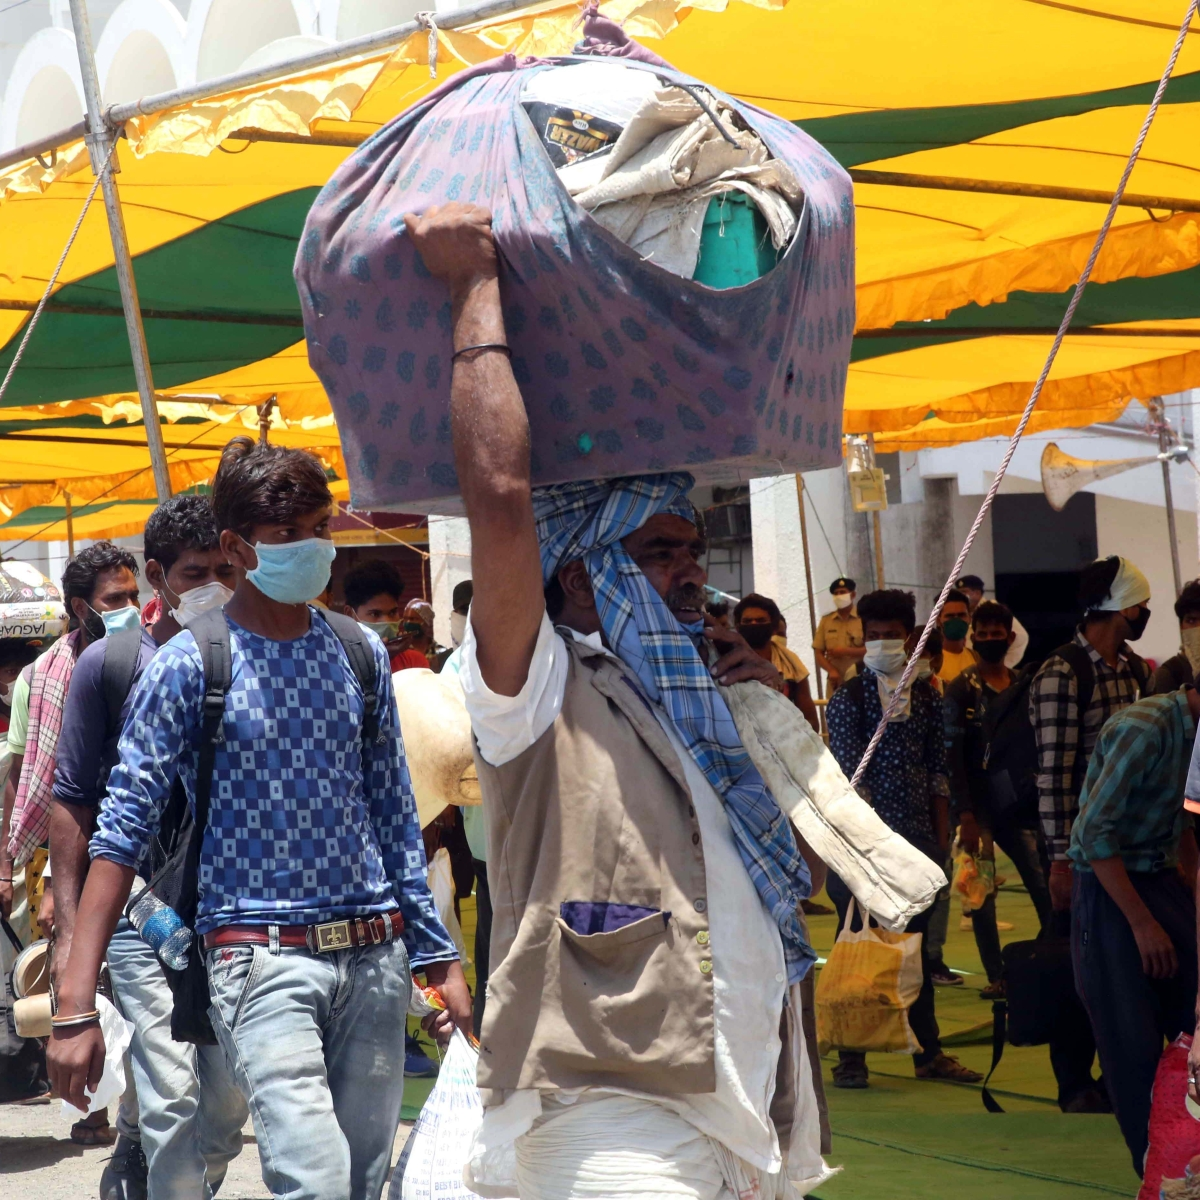 Bhopal: Miasma of uncertainty, confusion still hangs in air as labourers migrating and corona patients' number increasing